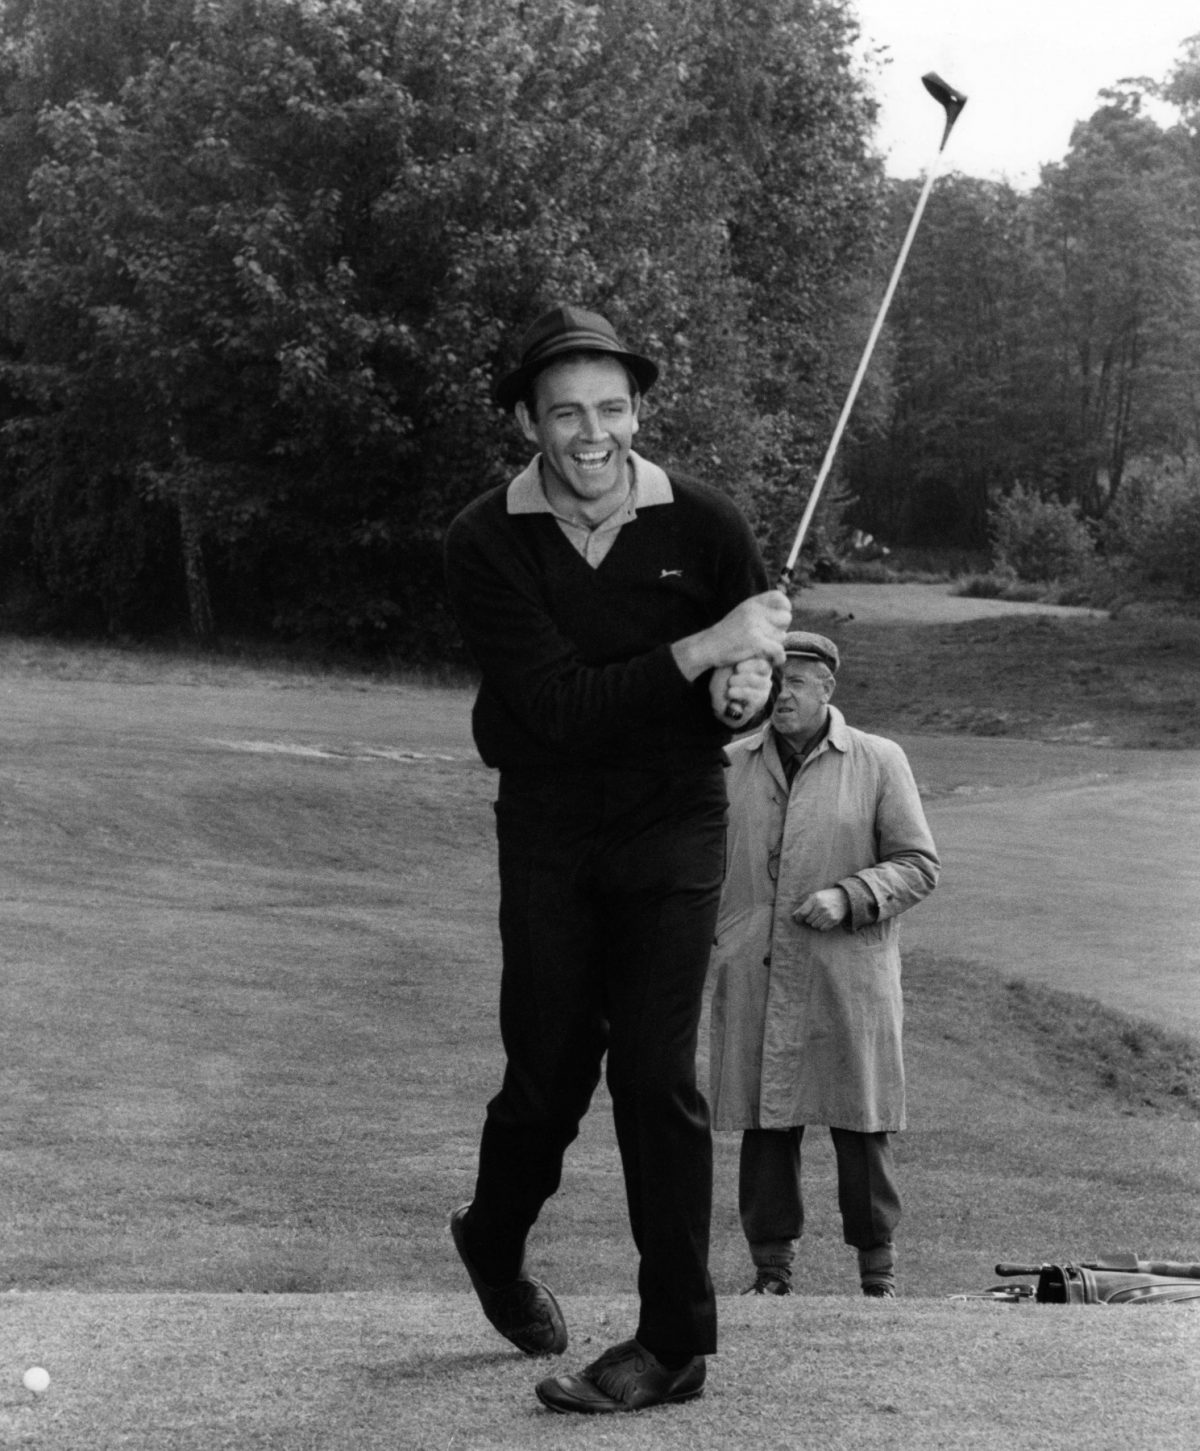 Sean Connery playing golf